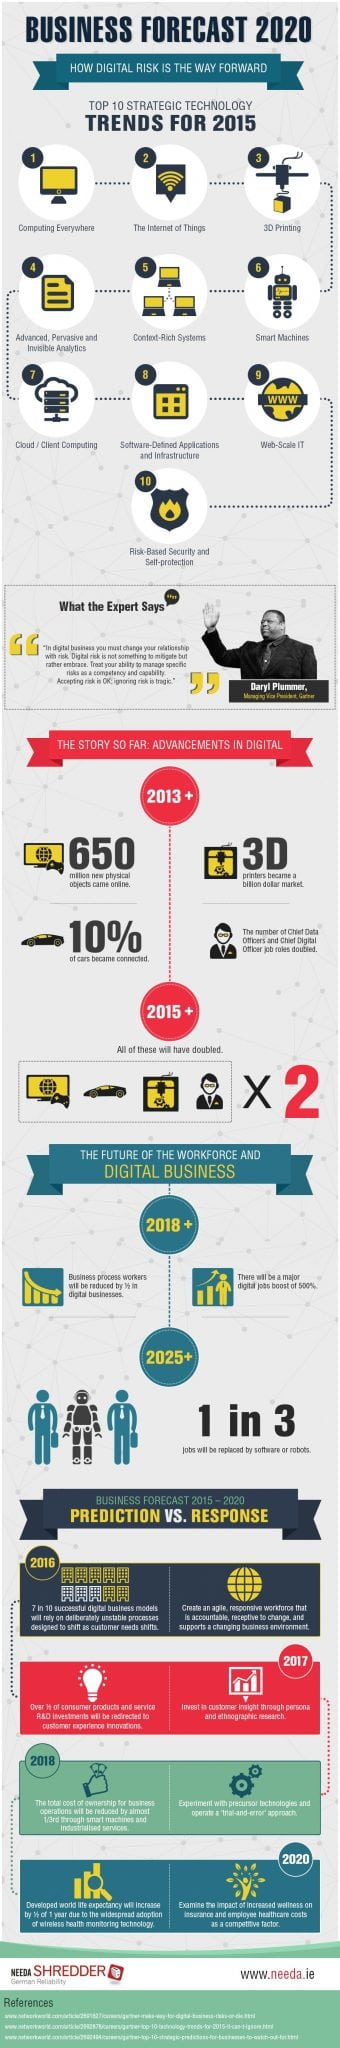 Photo of Business Forecast 2020 – How Digital Risk is the Way Forward [INFOGRAPHIC]